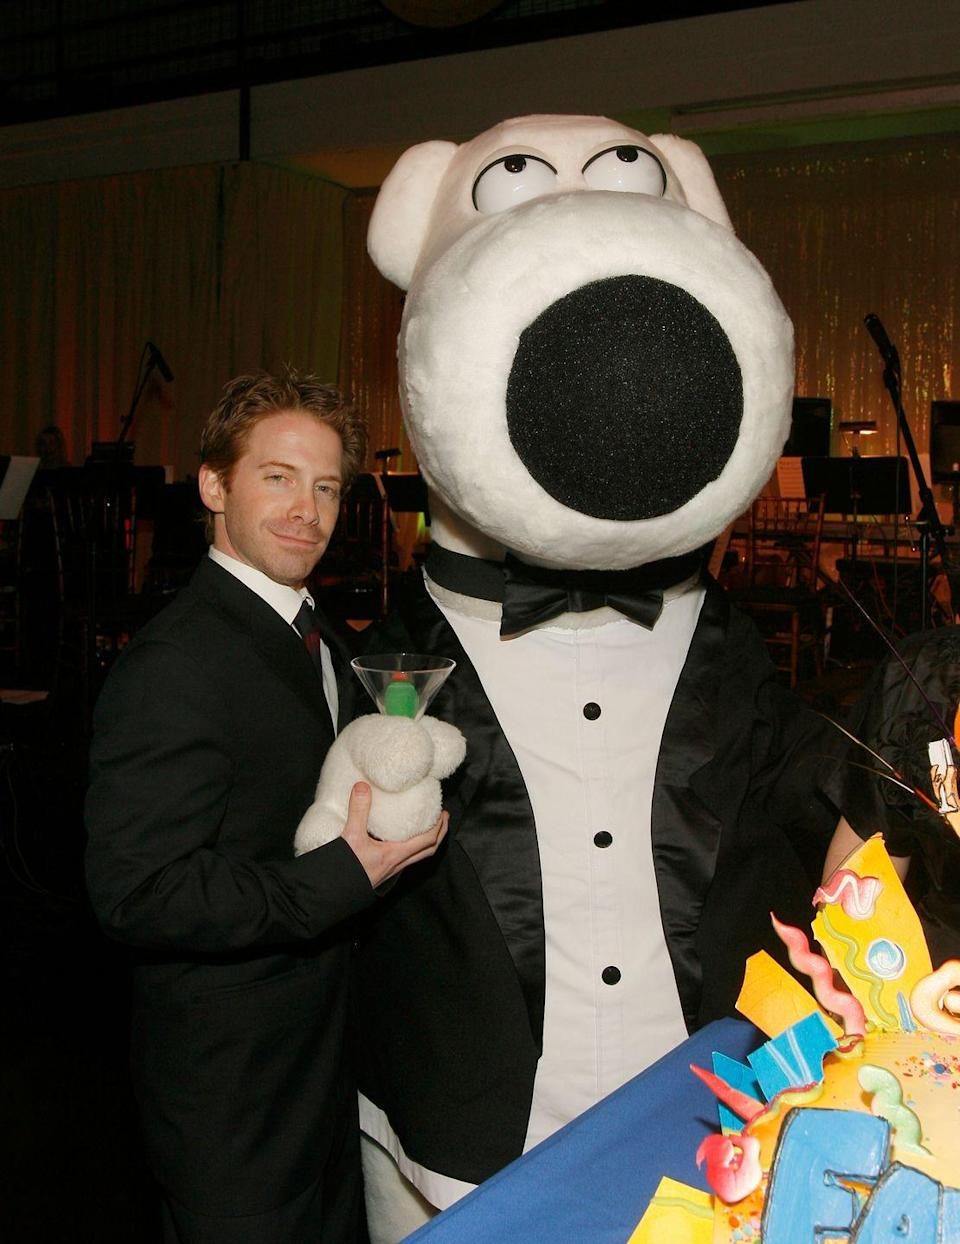 <p><em>Buffy the Vampire Slaye</em>r fans will always best remember Green as the beloved Oz, but he's been voicing Chris on <em>Family Guy </em>since 1999! He's also a co-creator (and one of the voices) on <em>Robot Chicken</em>, voiced Leonardo on several seasons of <em>Teenage Mutant Ninja Turtles</em>, plays Rick Jones and Rocket Raccoon in <em>Hulk and the Agents of S.M.A.S.H.</em> and plays Howard the Duck in the <em>Guardians of the Galaxy</em> film and Disney XD series.</p>